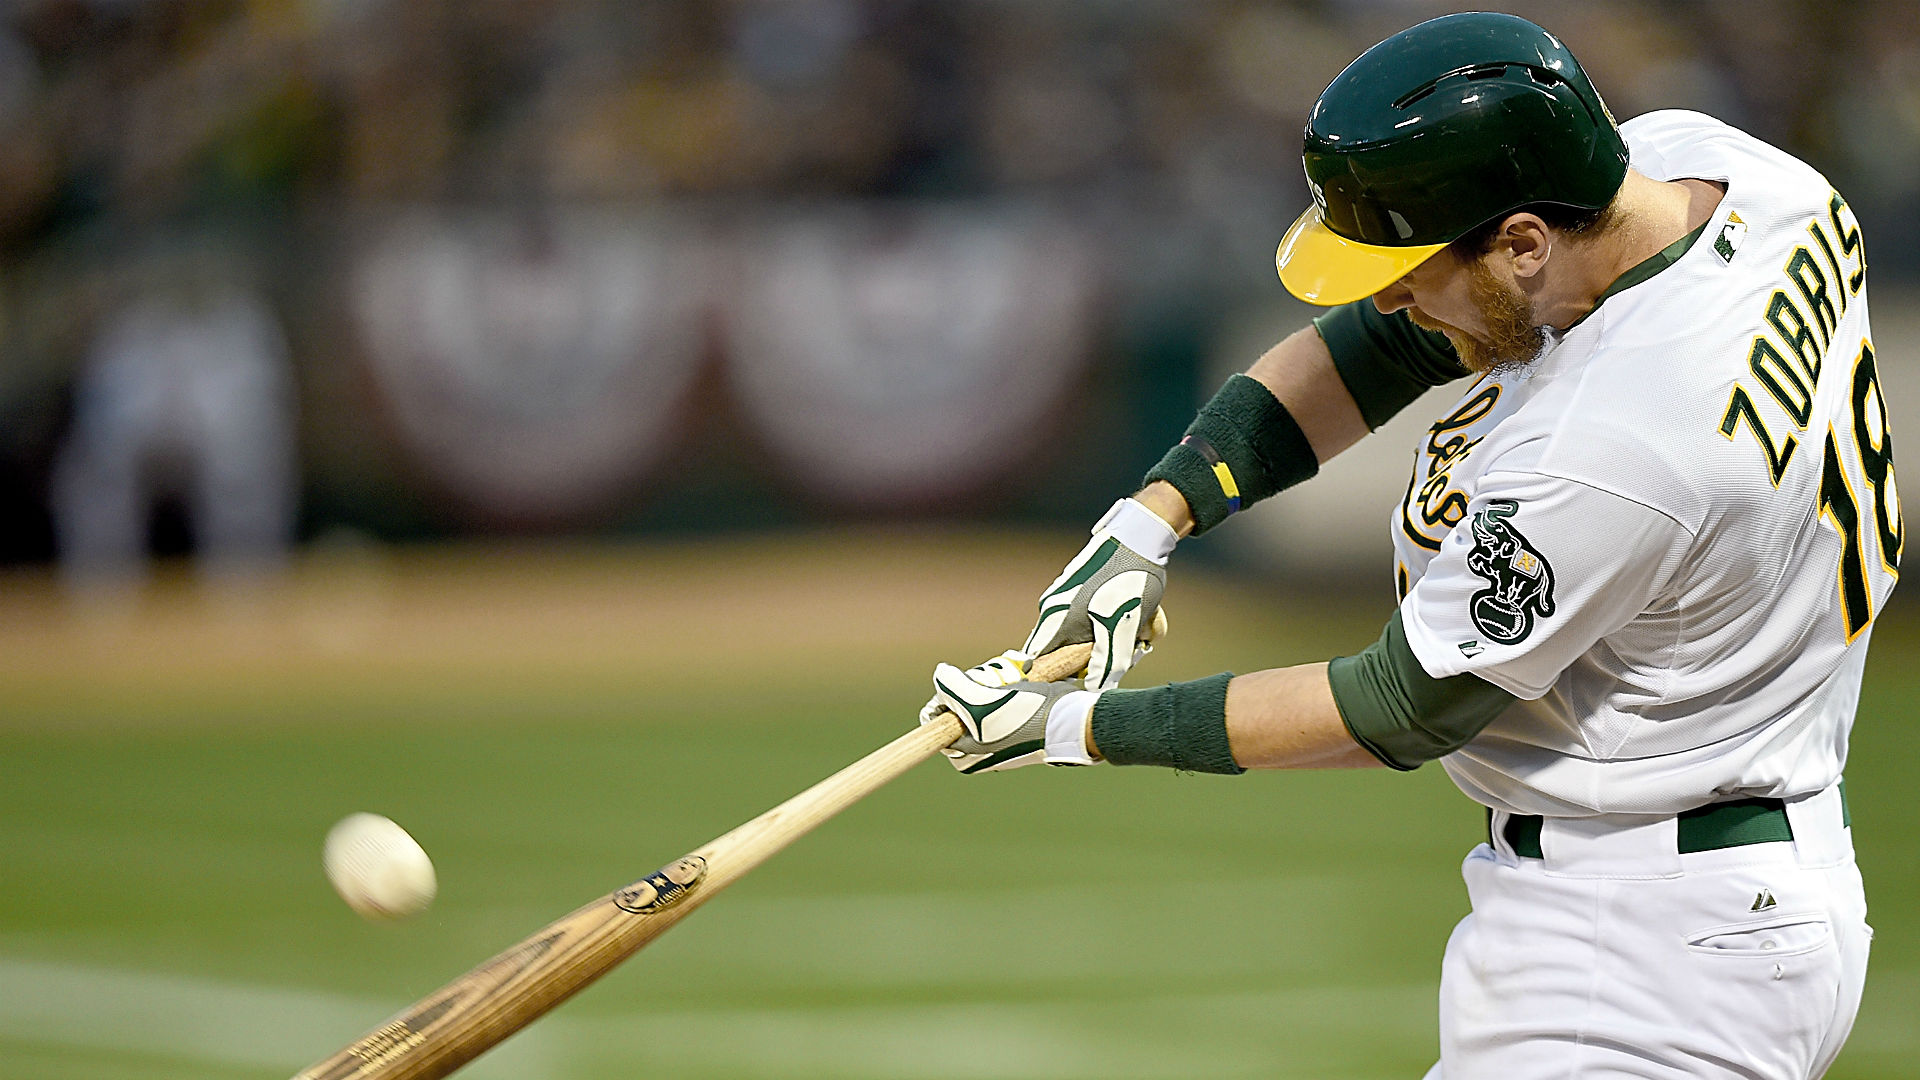 Athletics' utilityman Ben Zobrist to undergo arthroscopic knee surgery